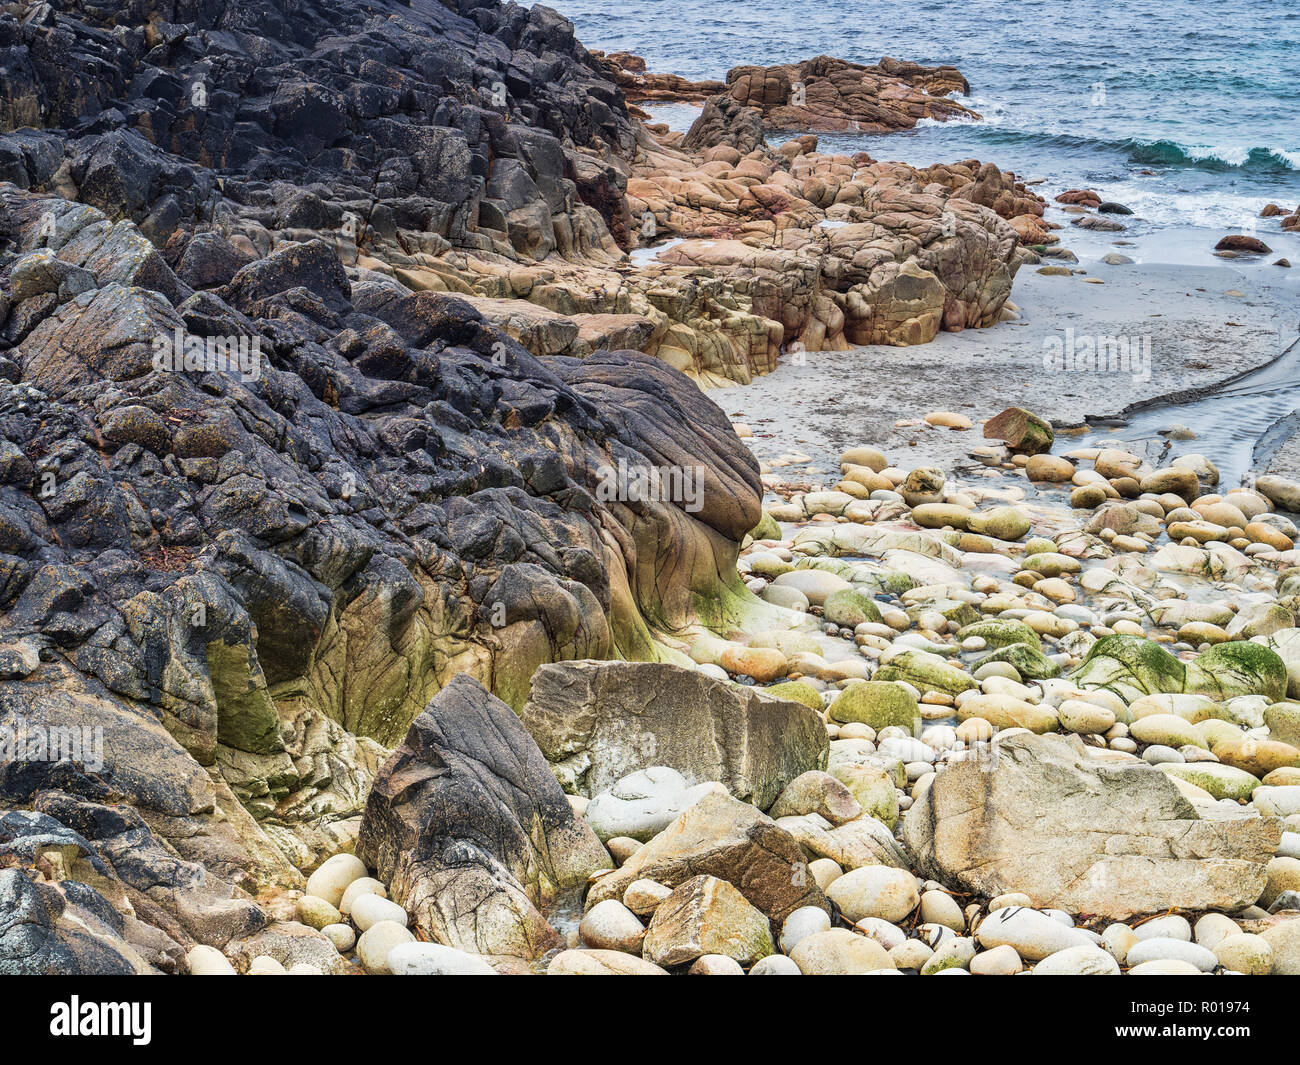 Porth Nanven Beach, sometimes called Dinosaur Egg Beach beacuse of the round boulders covering the beach, Cornwall, UK - Stock Image